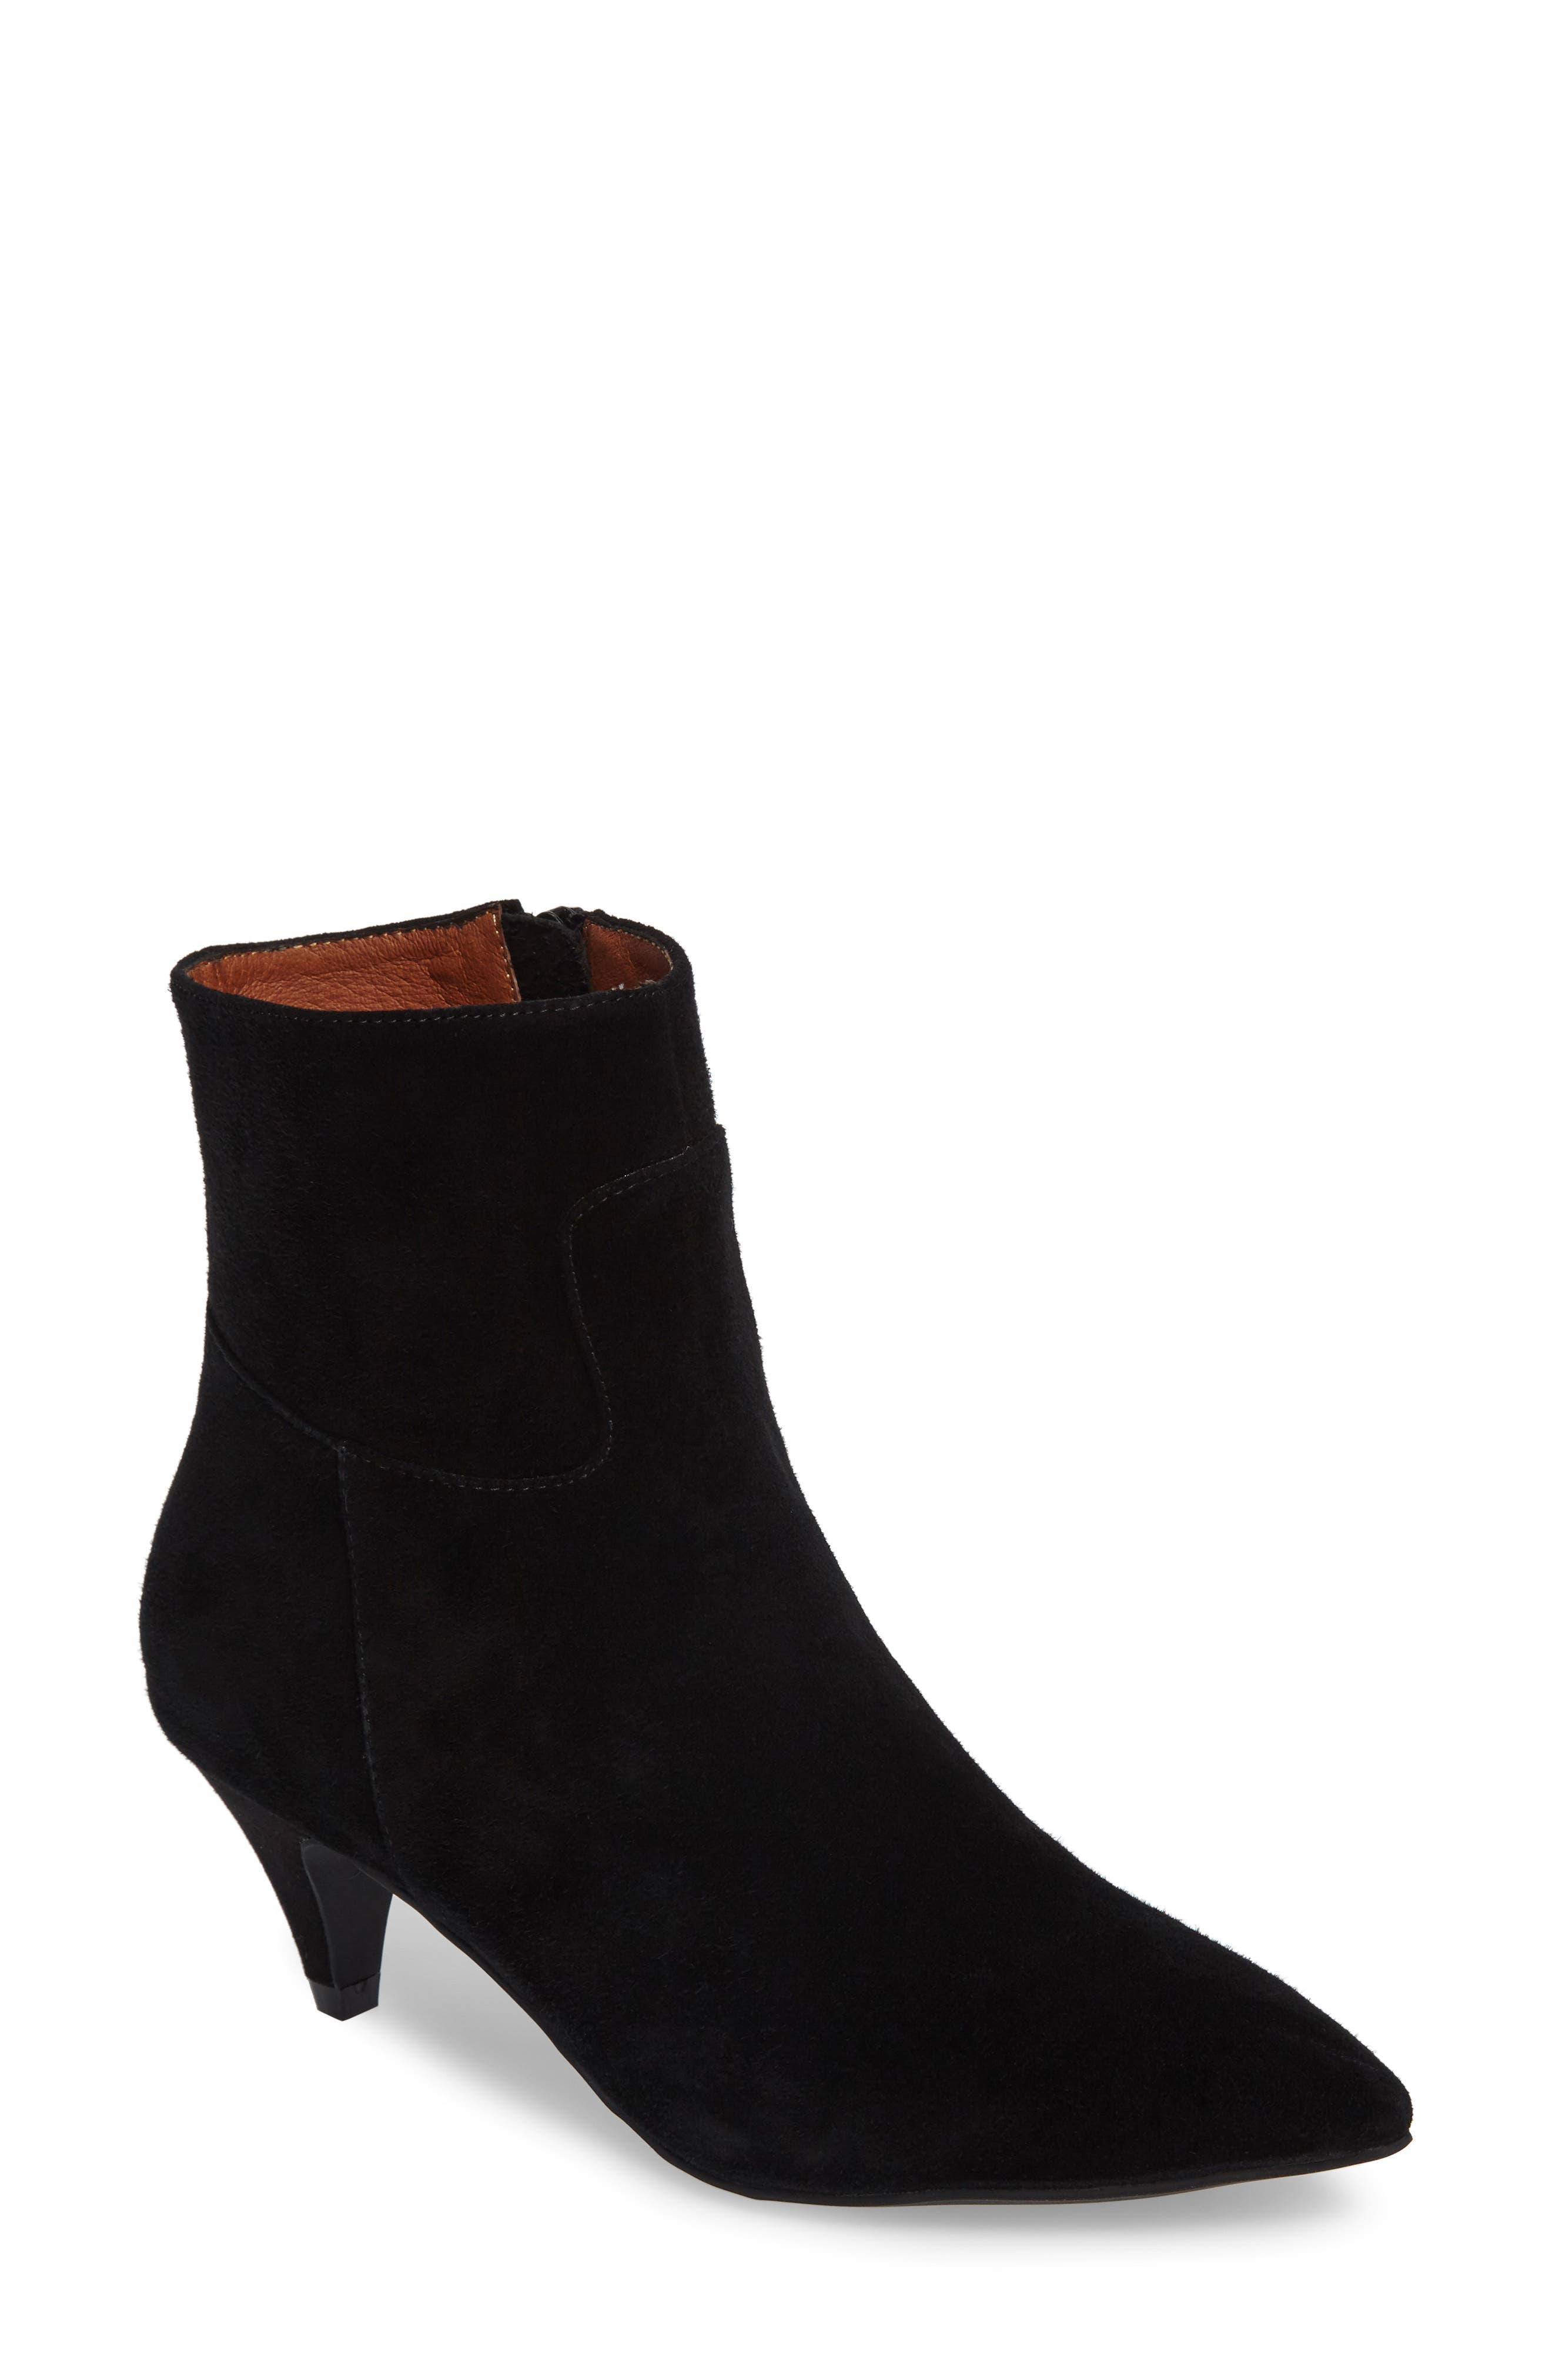 Muse Bootie,                         Main,                         color, 005